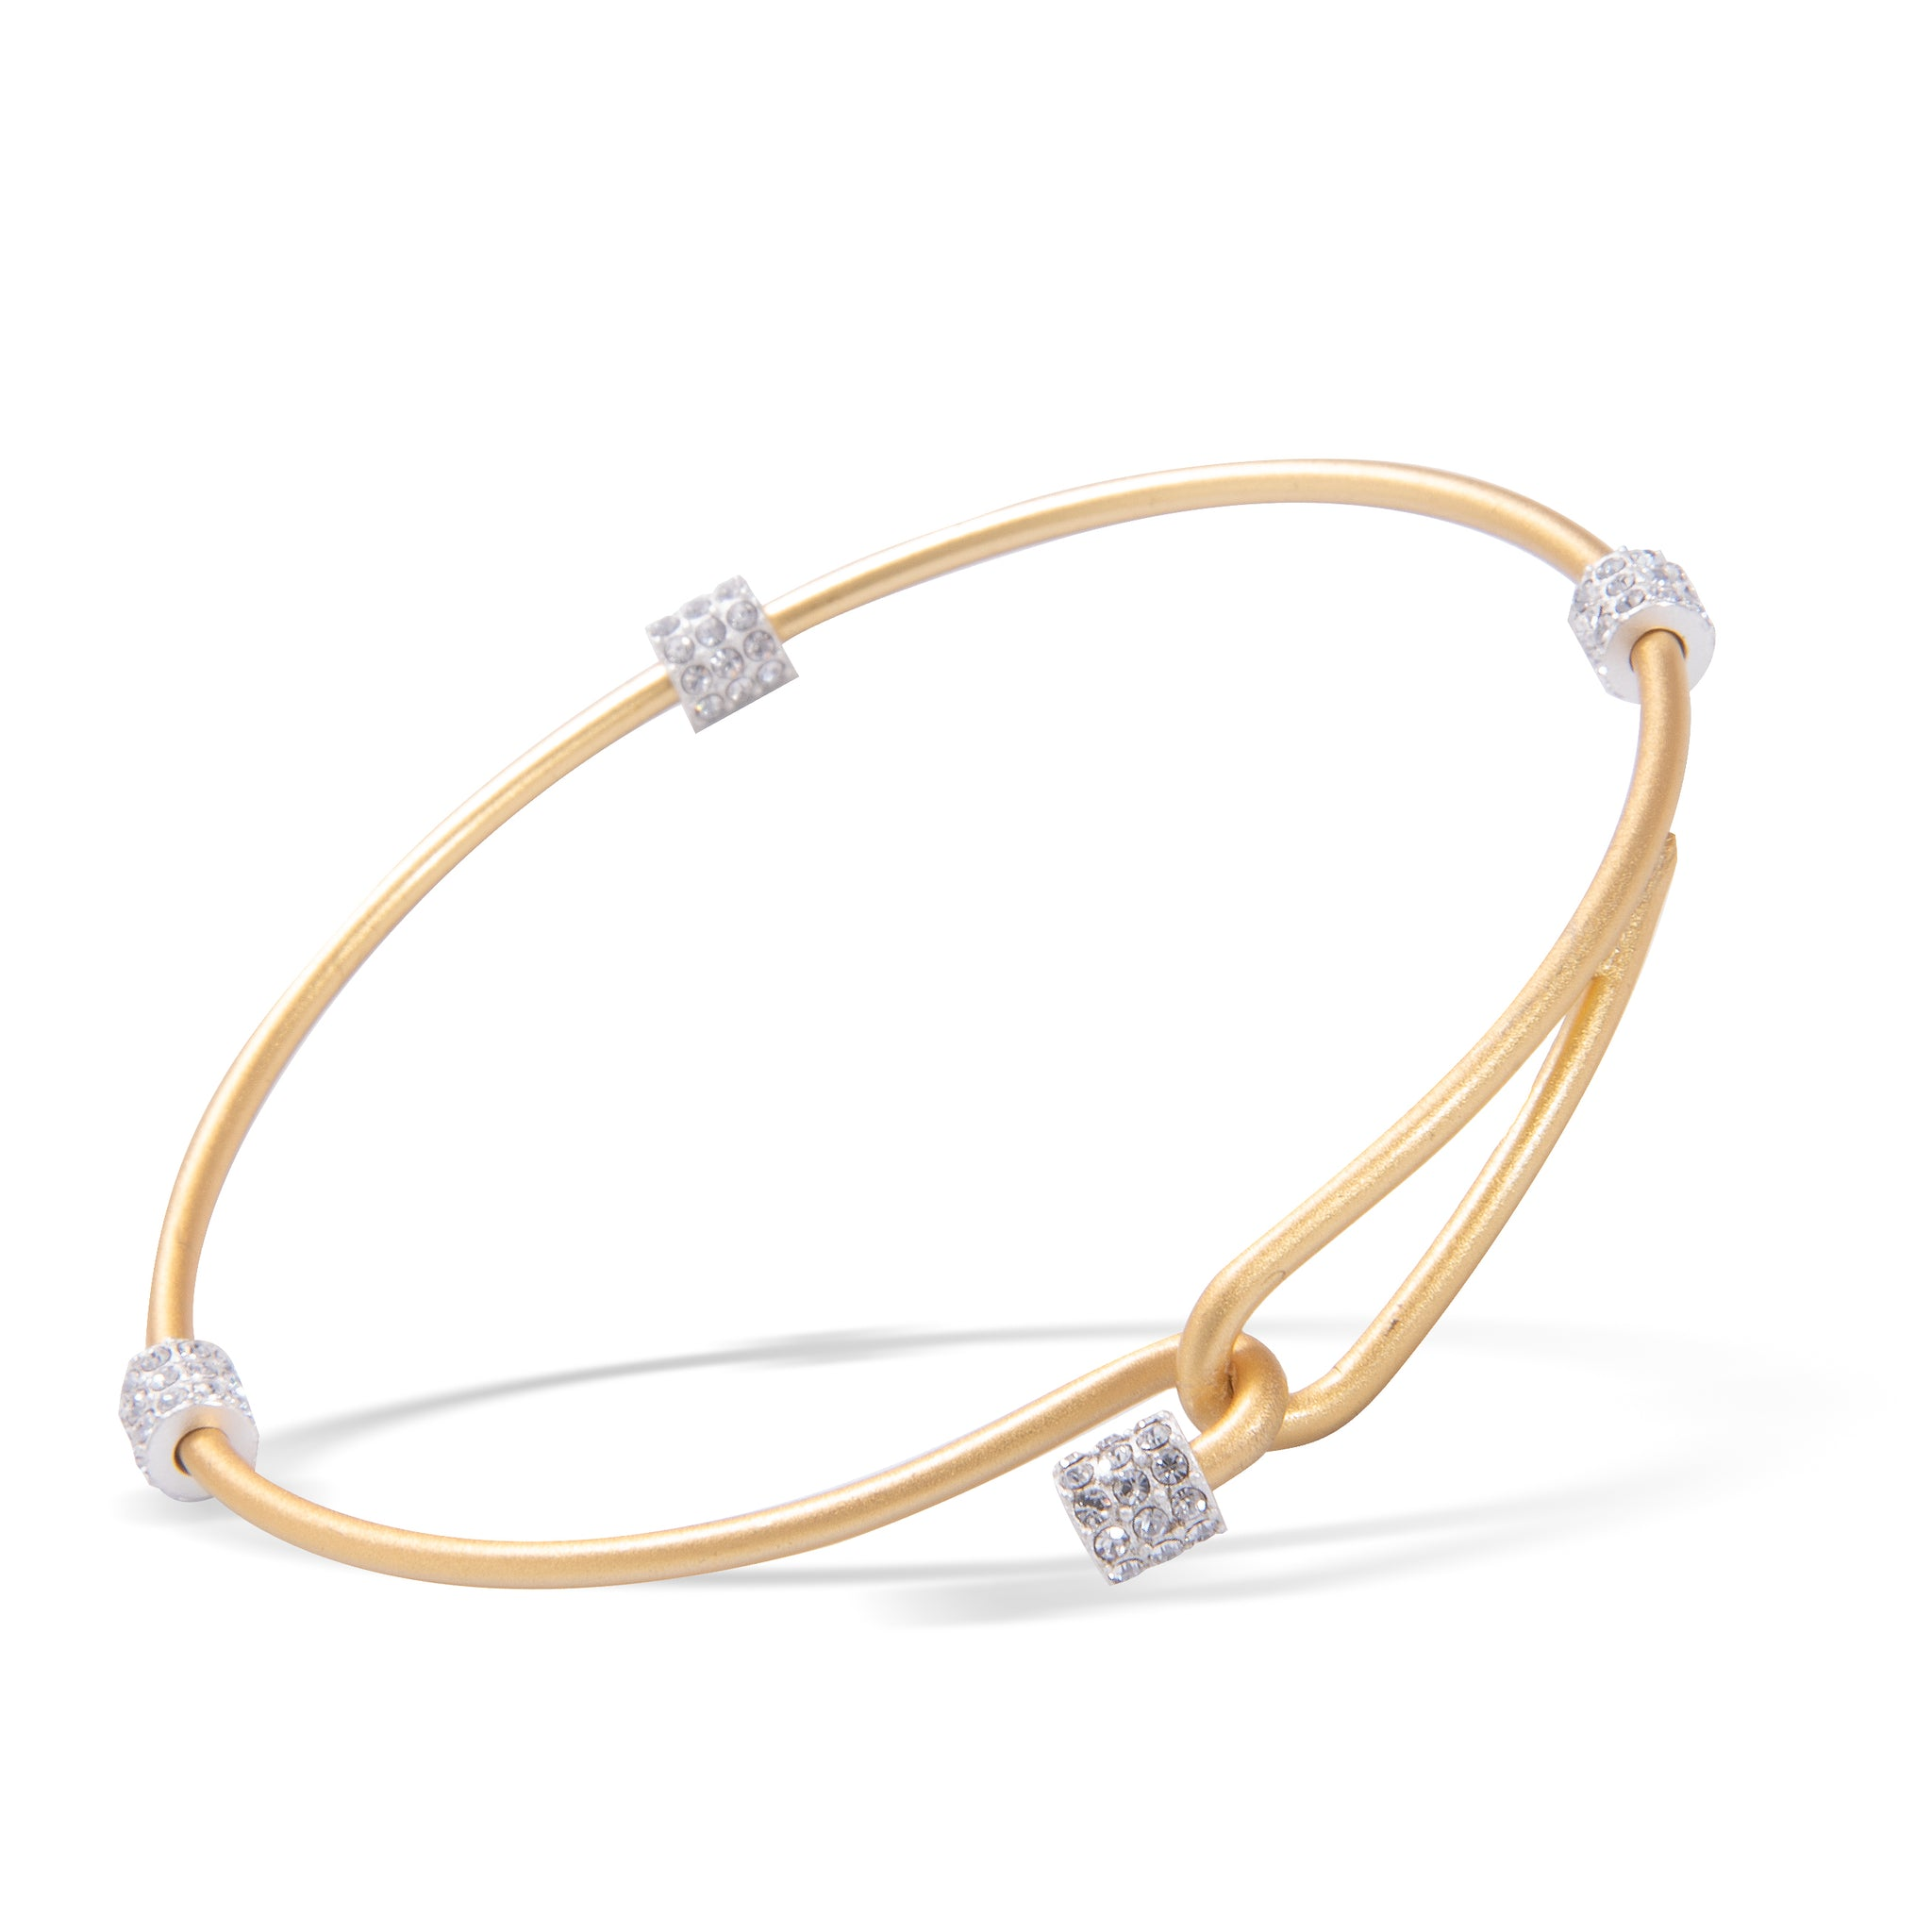 Heartfelt Emotions Crystal Two-Tone Clasp Bangle - Gold with Silver